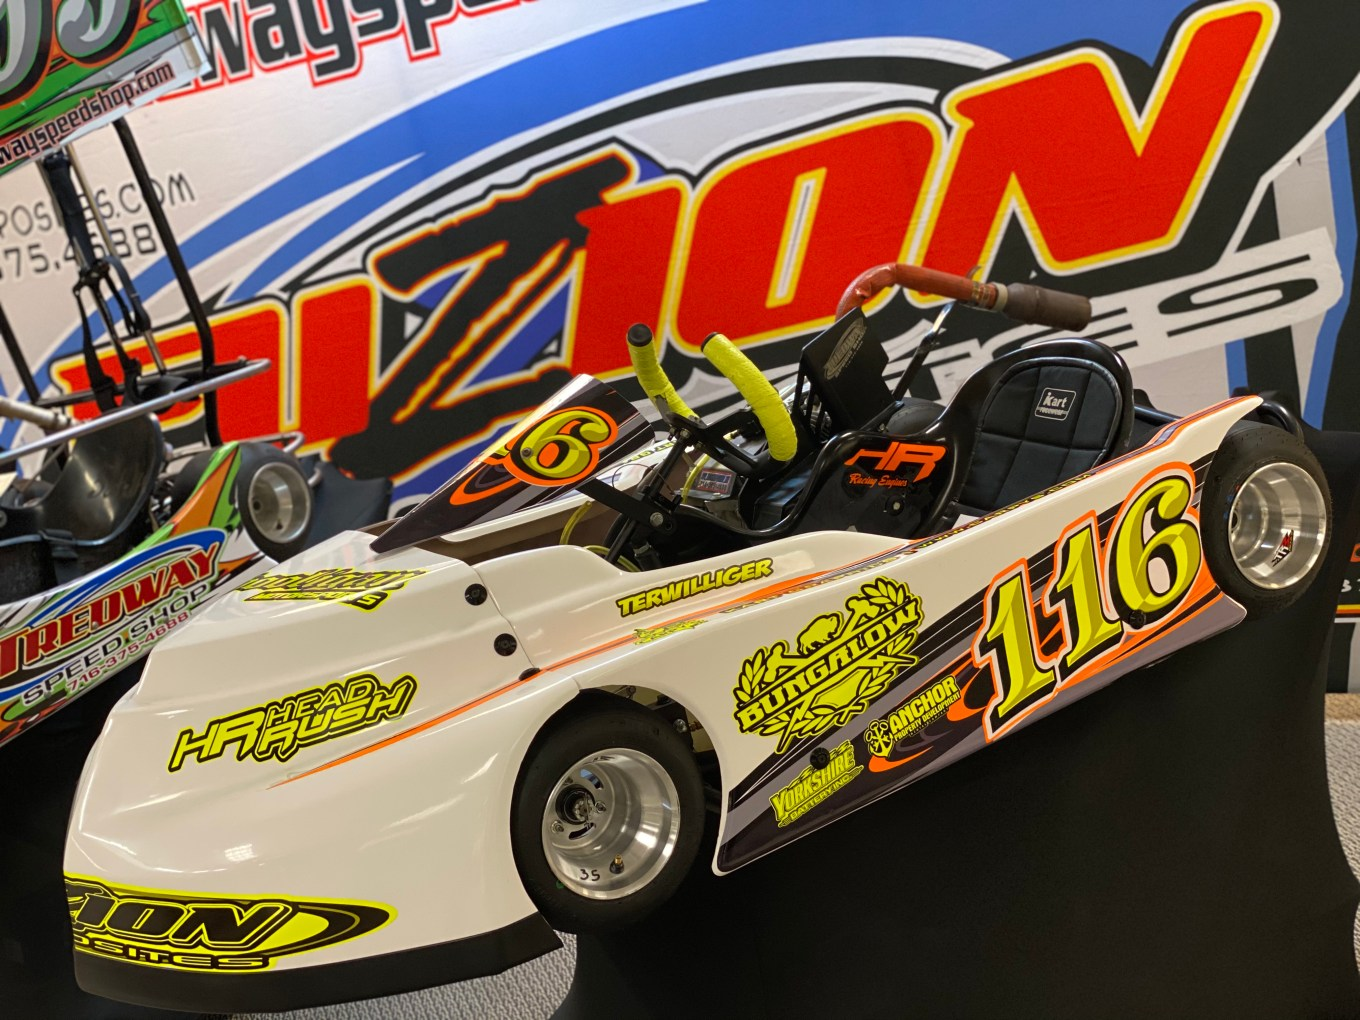 Jost Terwillger's Tredway Speed Shop Kart Wrapped by Carpy's in Olean, NY